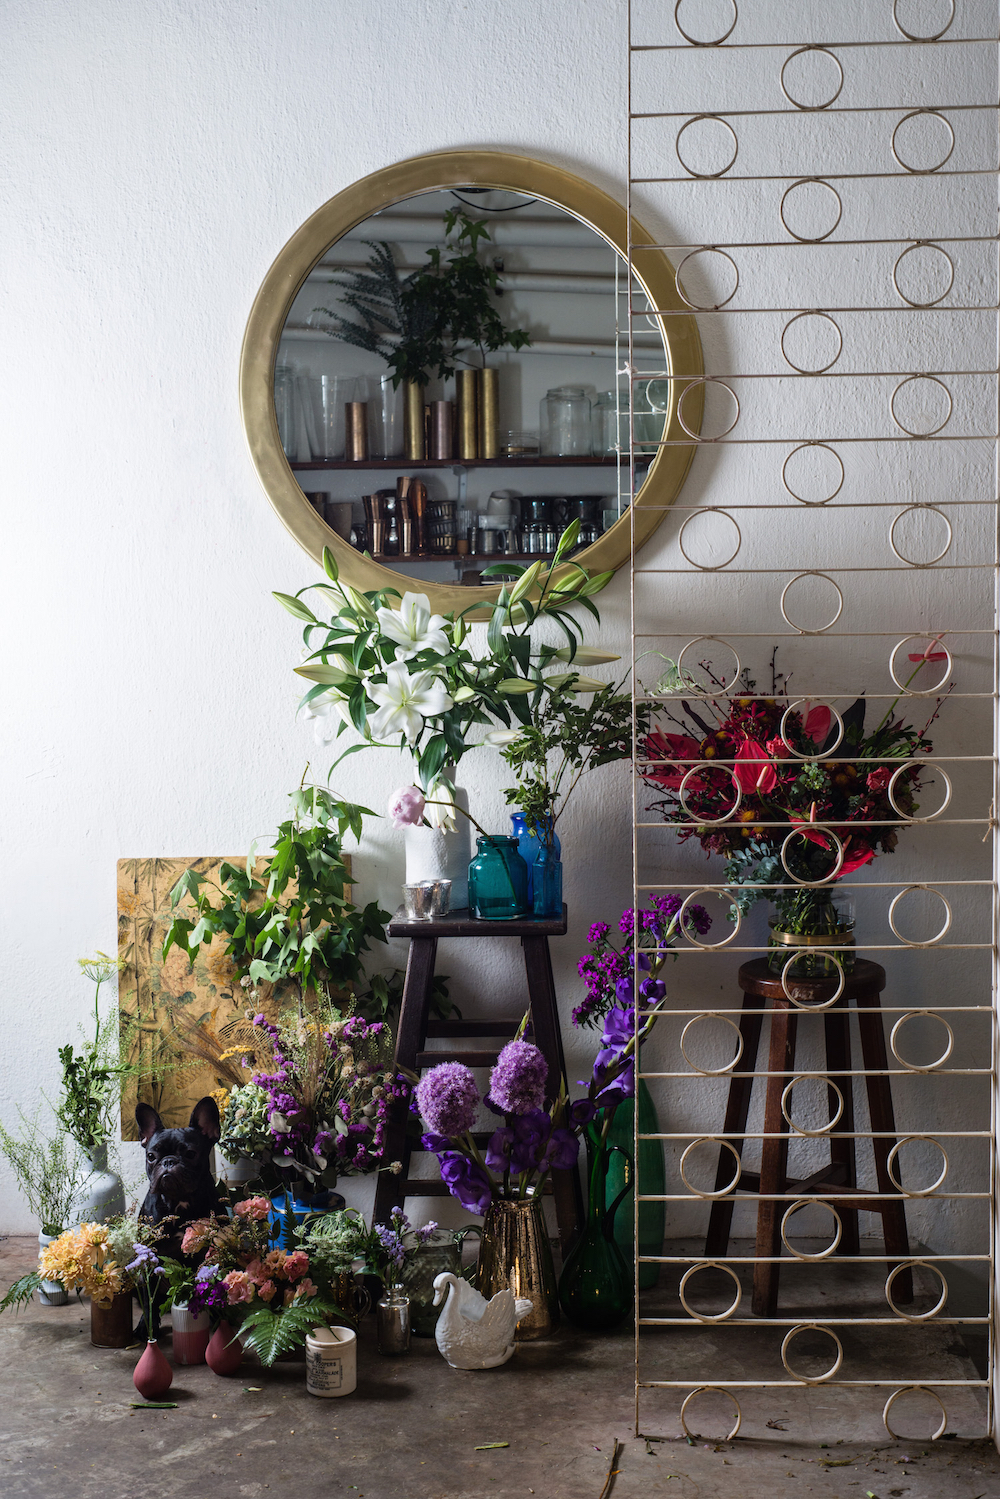 CP vases and bouquets lifestyle-2 low res.jpeg